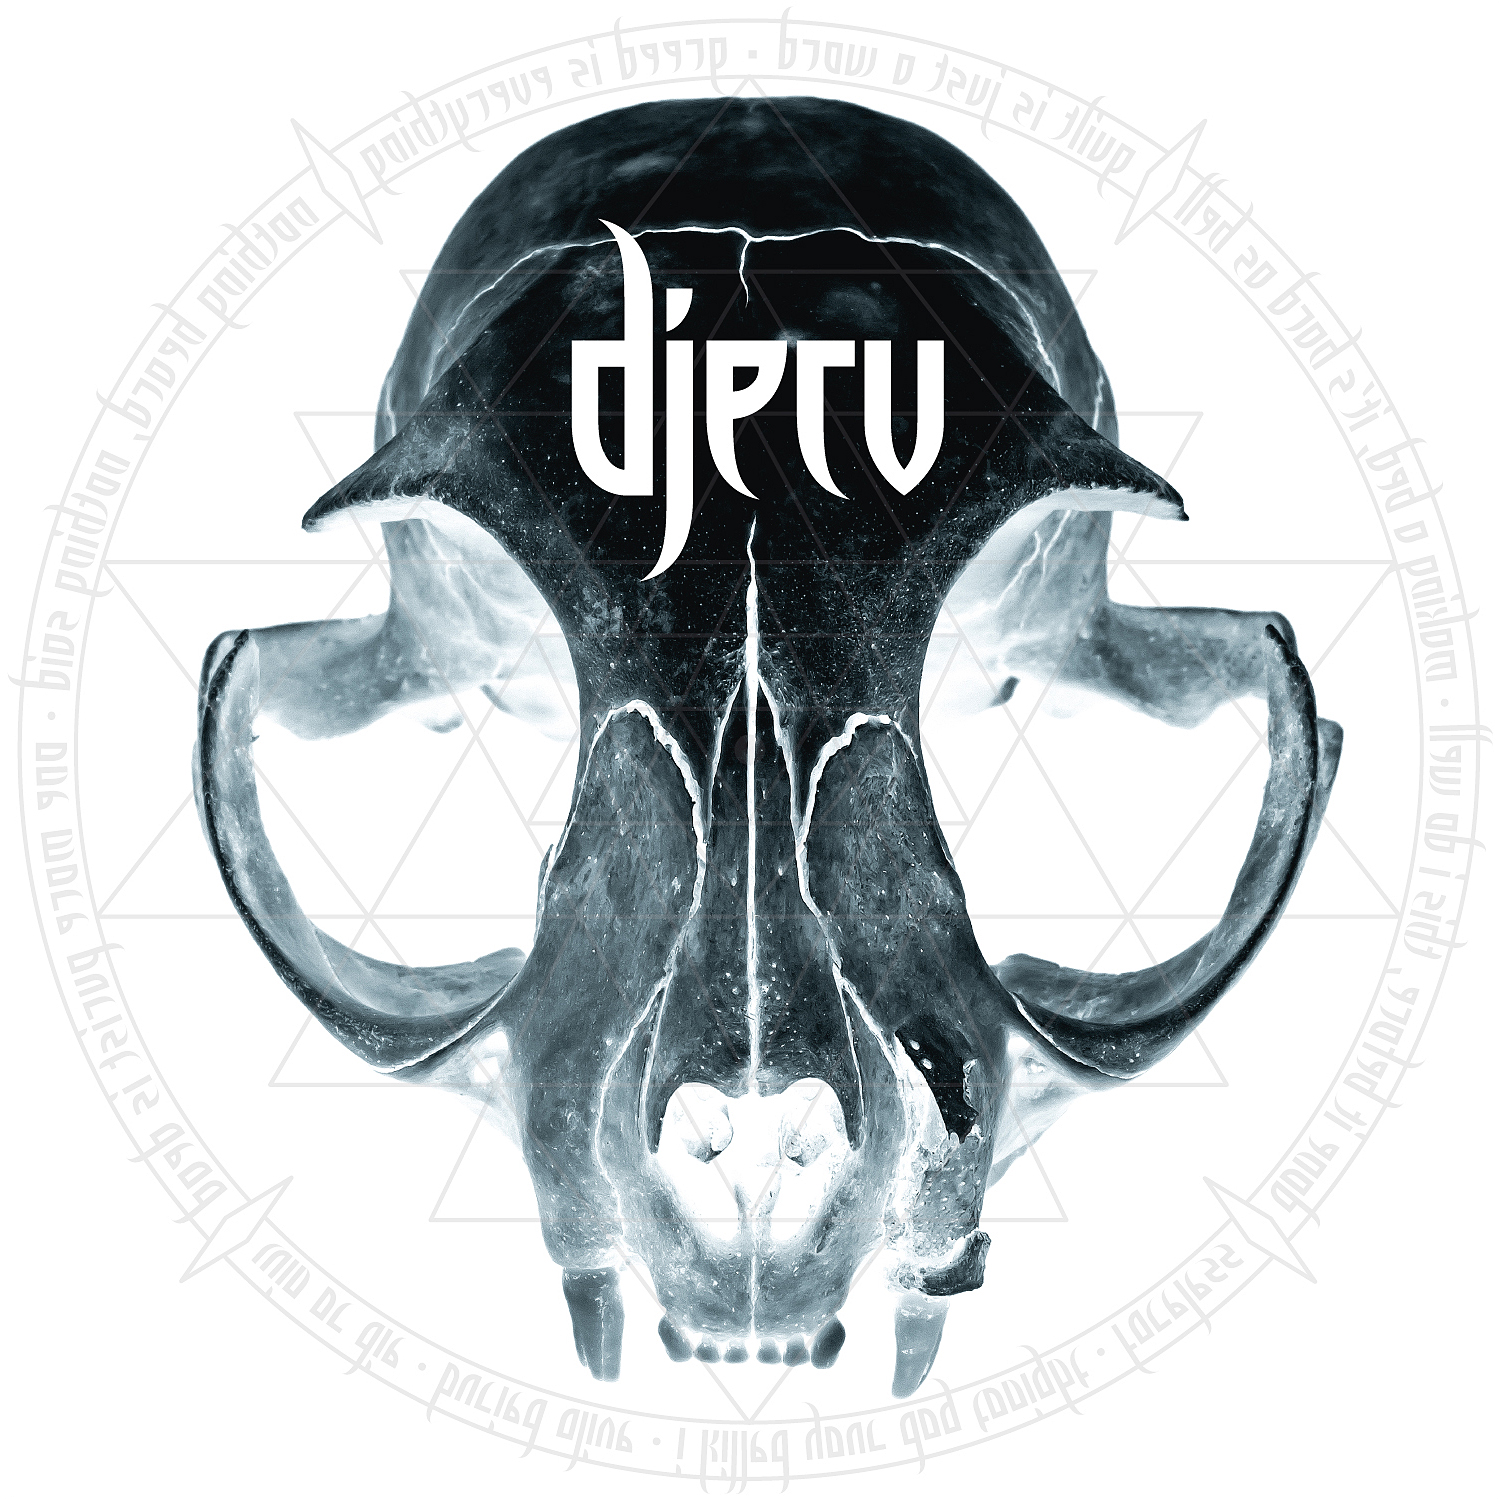 Djerv – Djerv Review